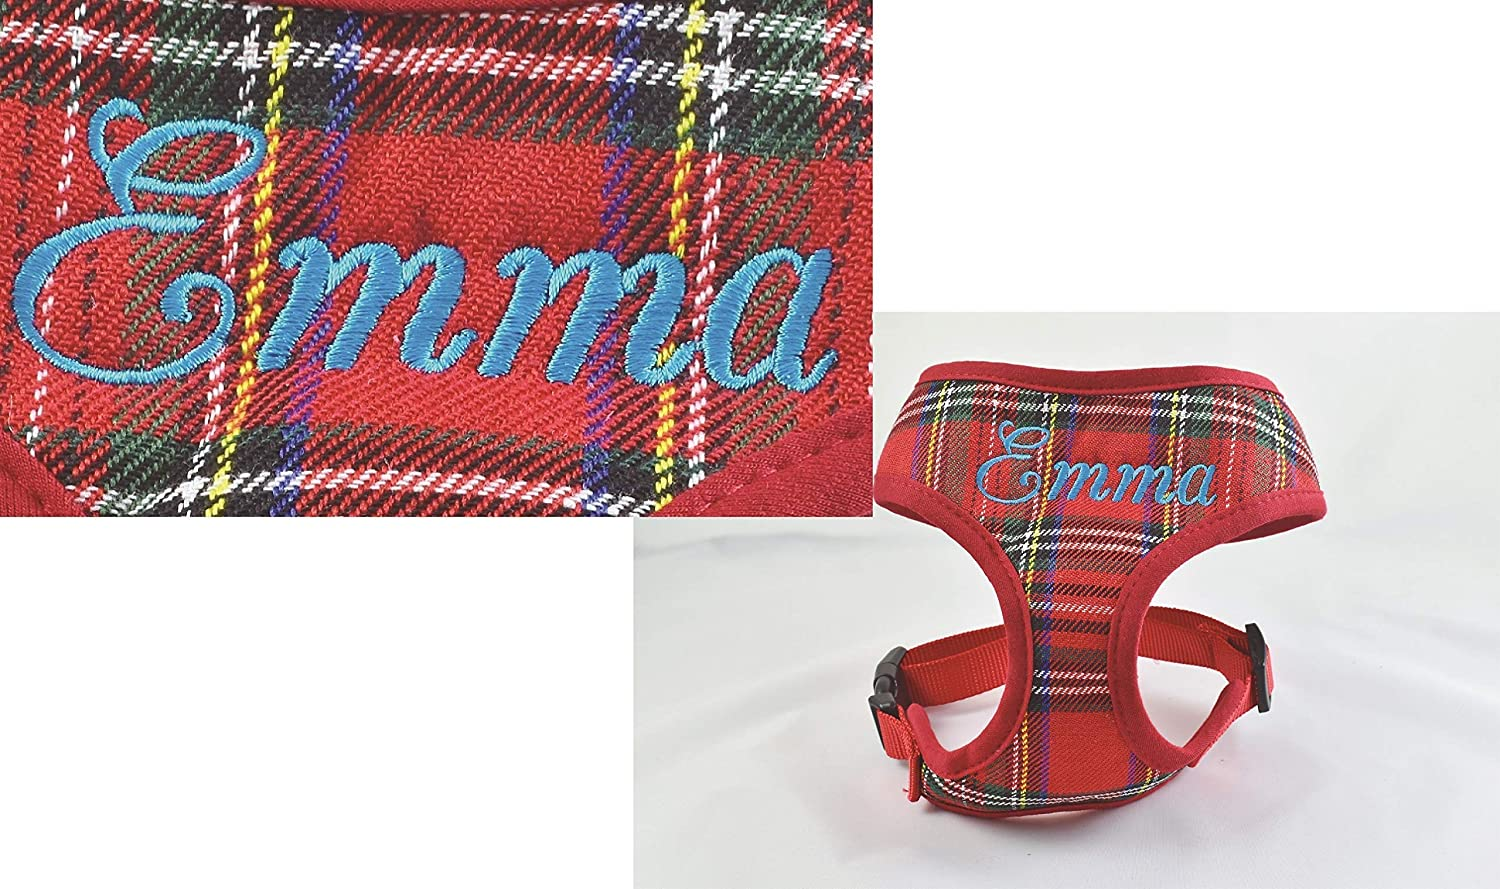 Adjustable Soft Comfortable Custom Embroidered Name or Order it Blank Personalized Custom Red Stewart Plaid Padded DOG Harness